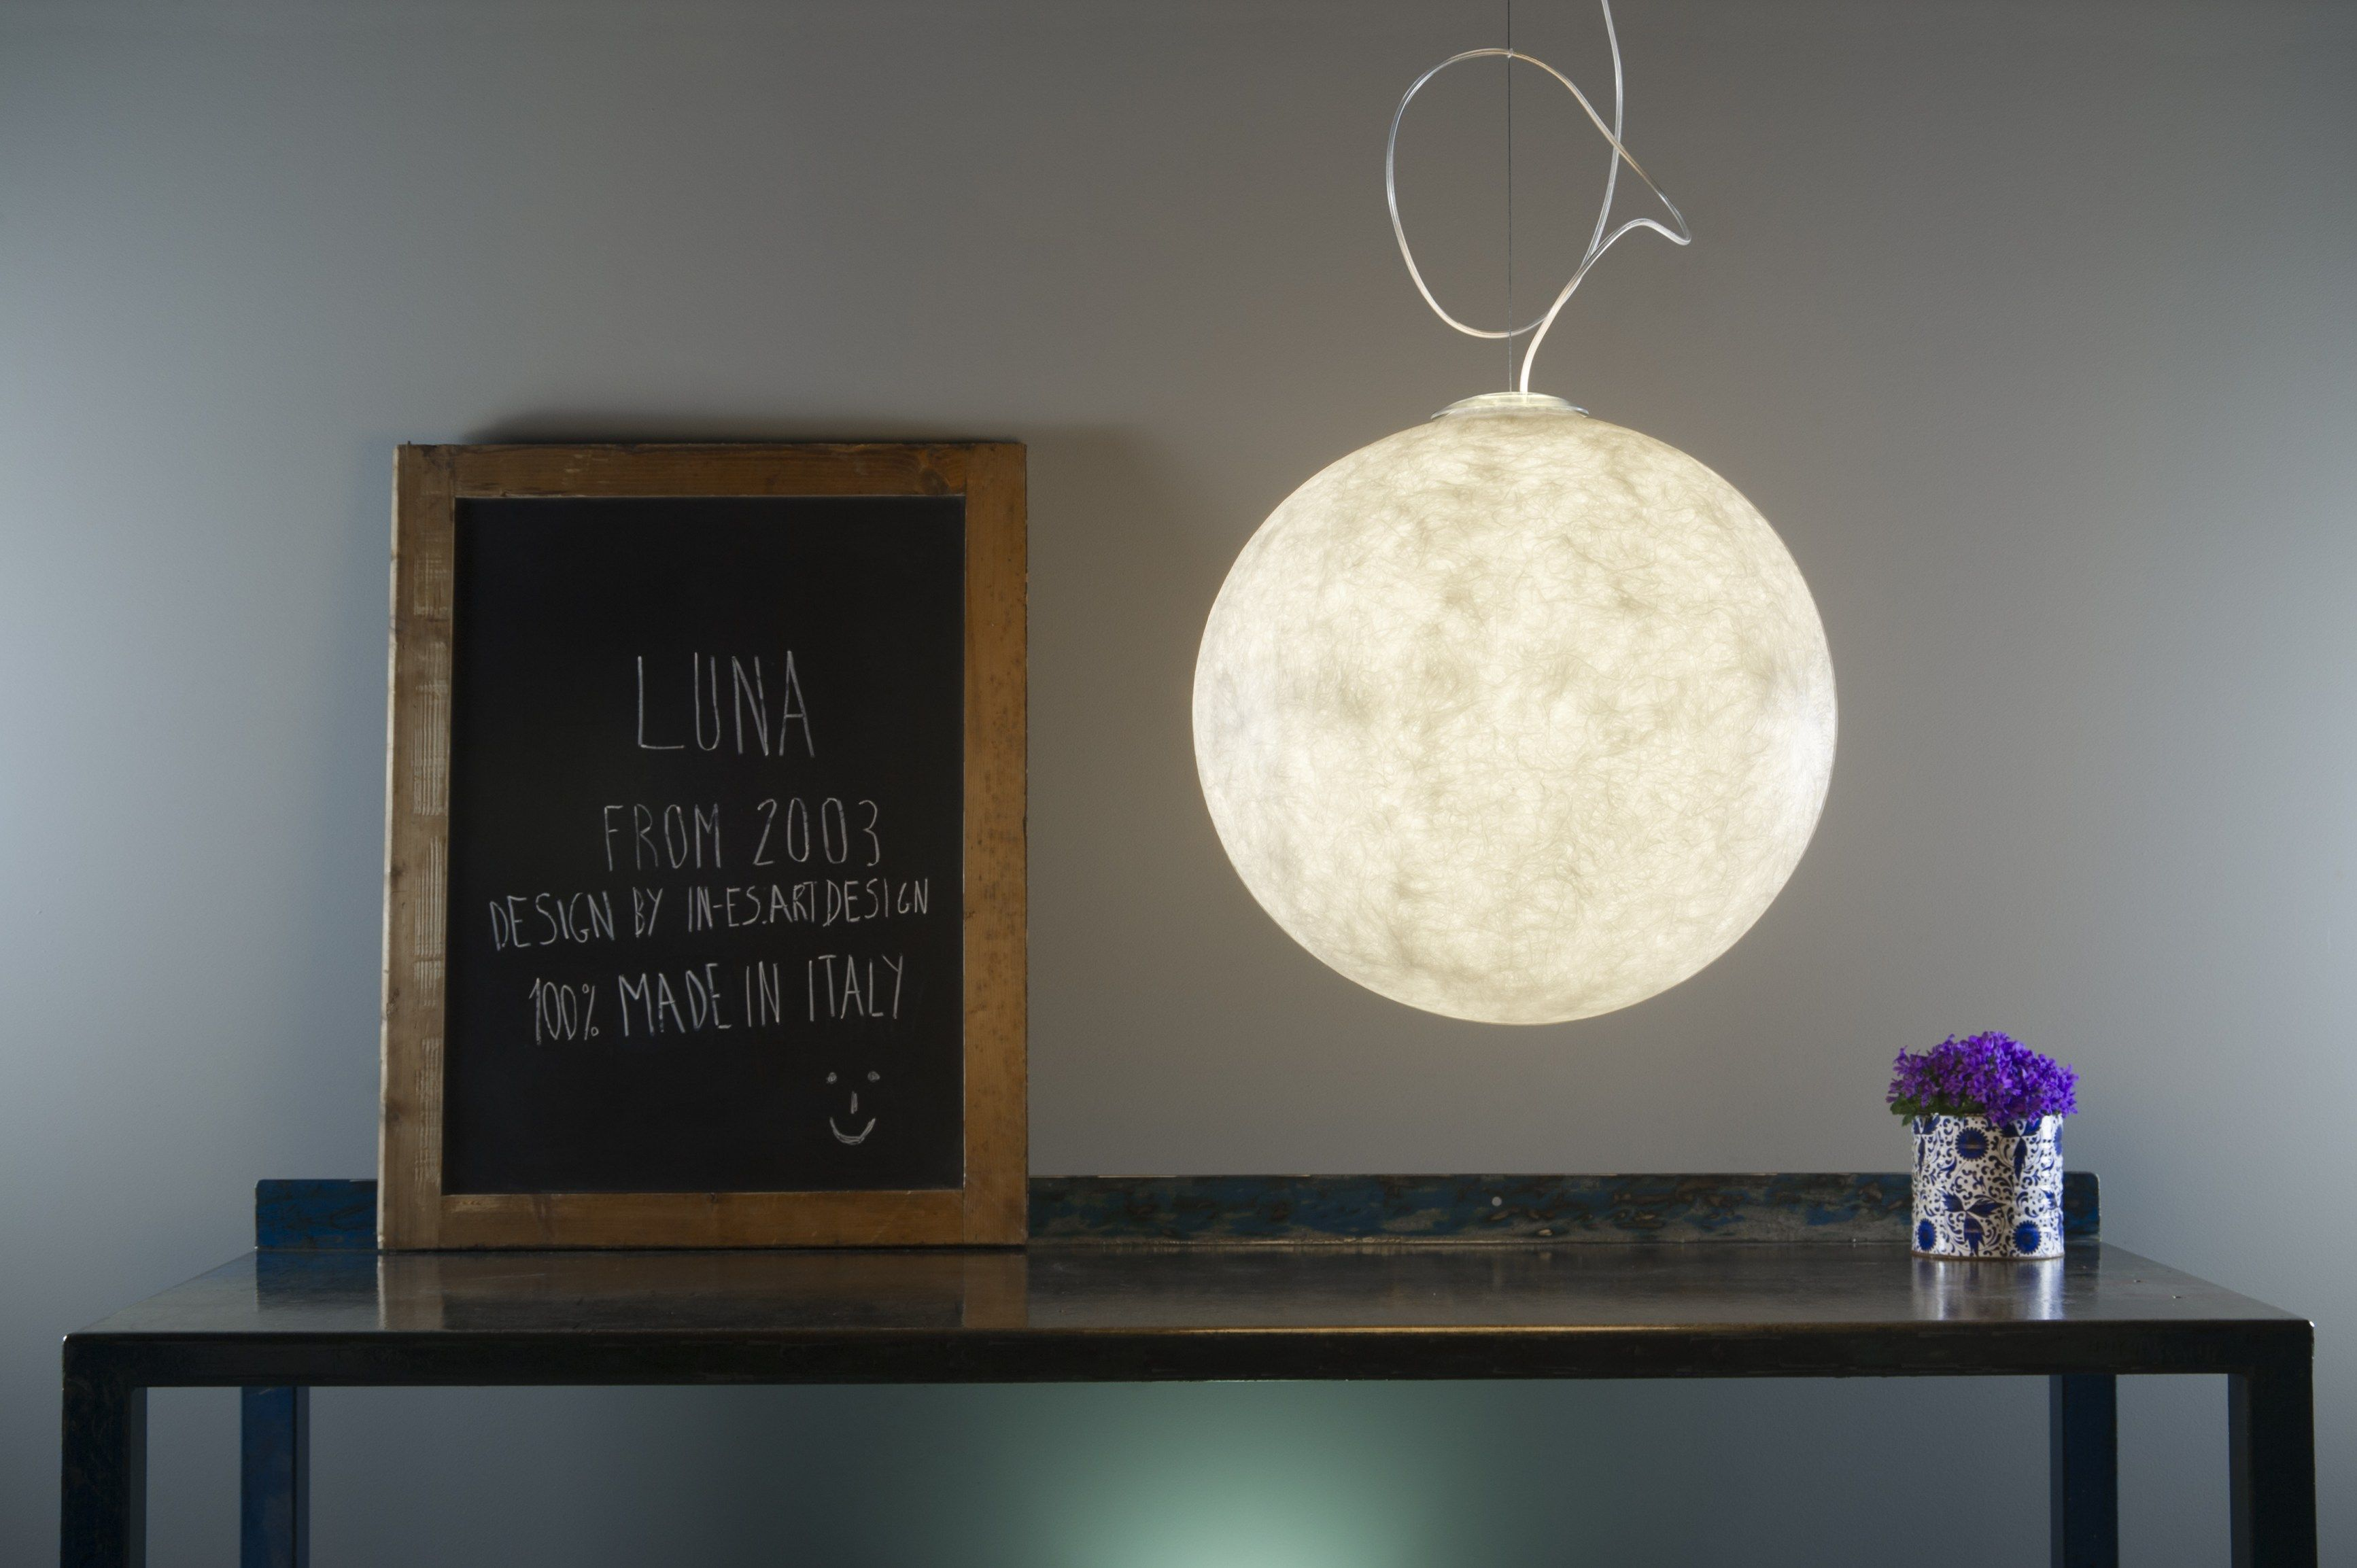 LUNA Pendant lamp by In-es.artdesign